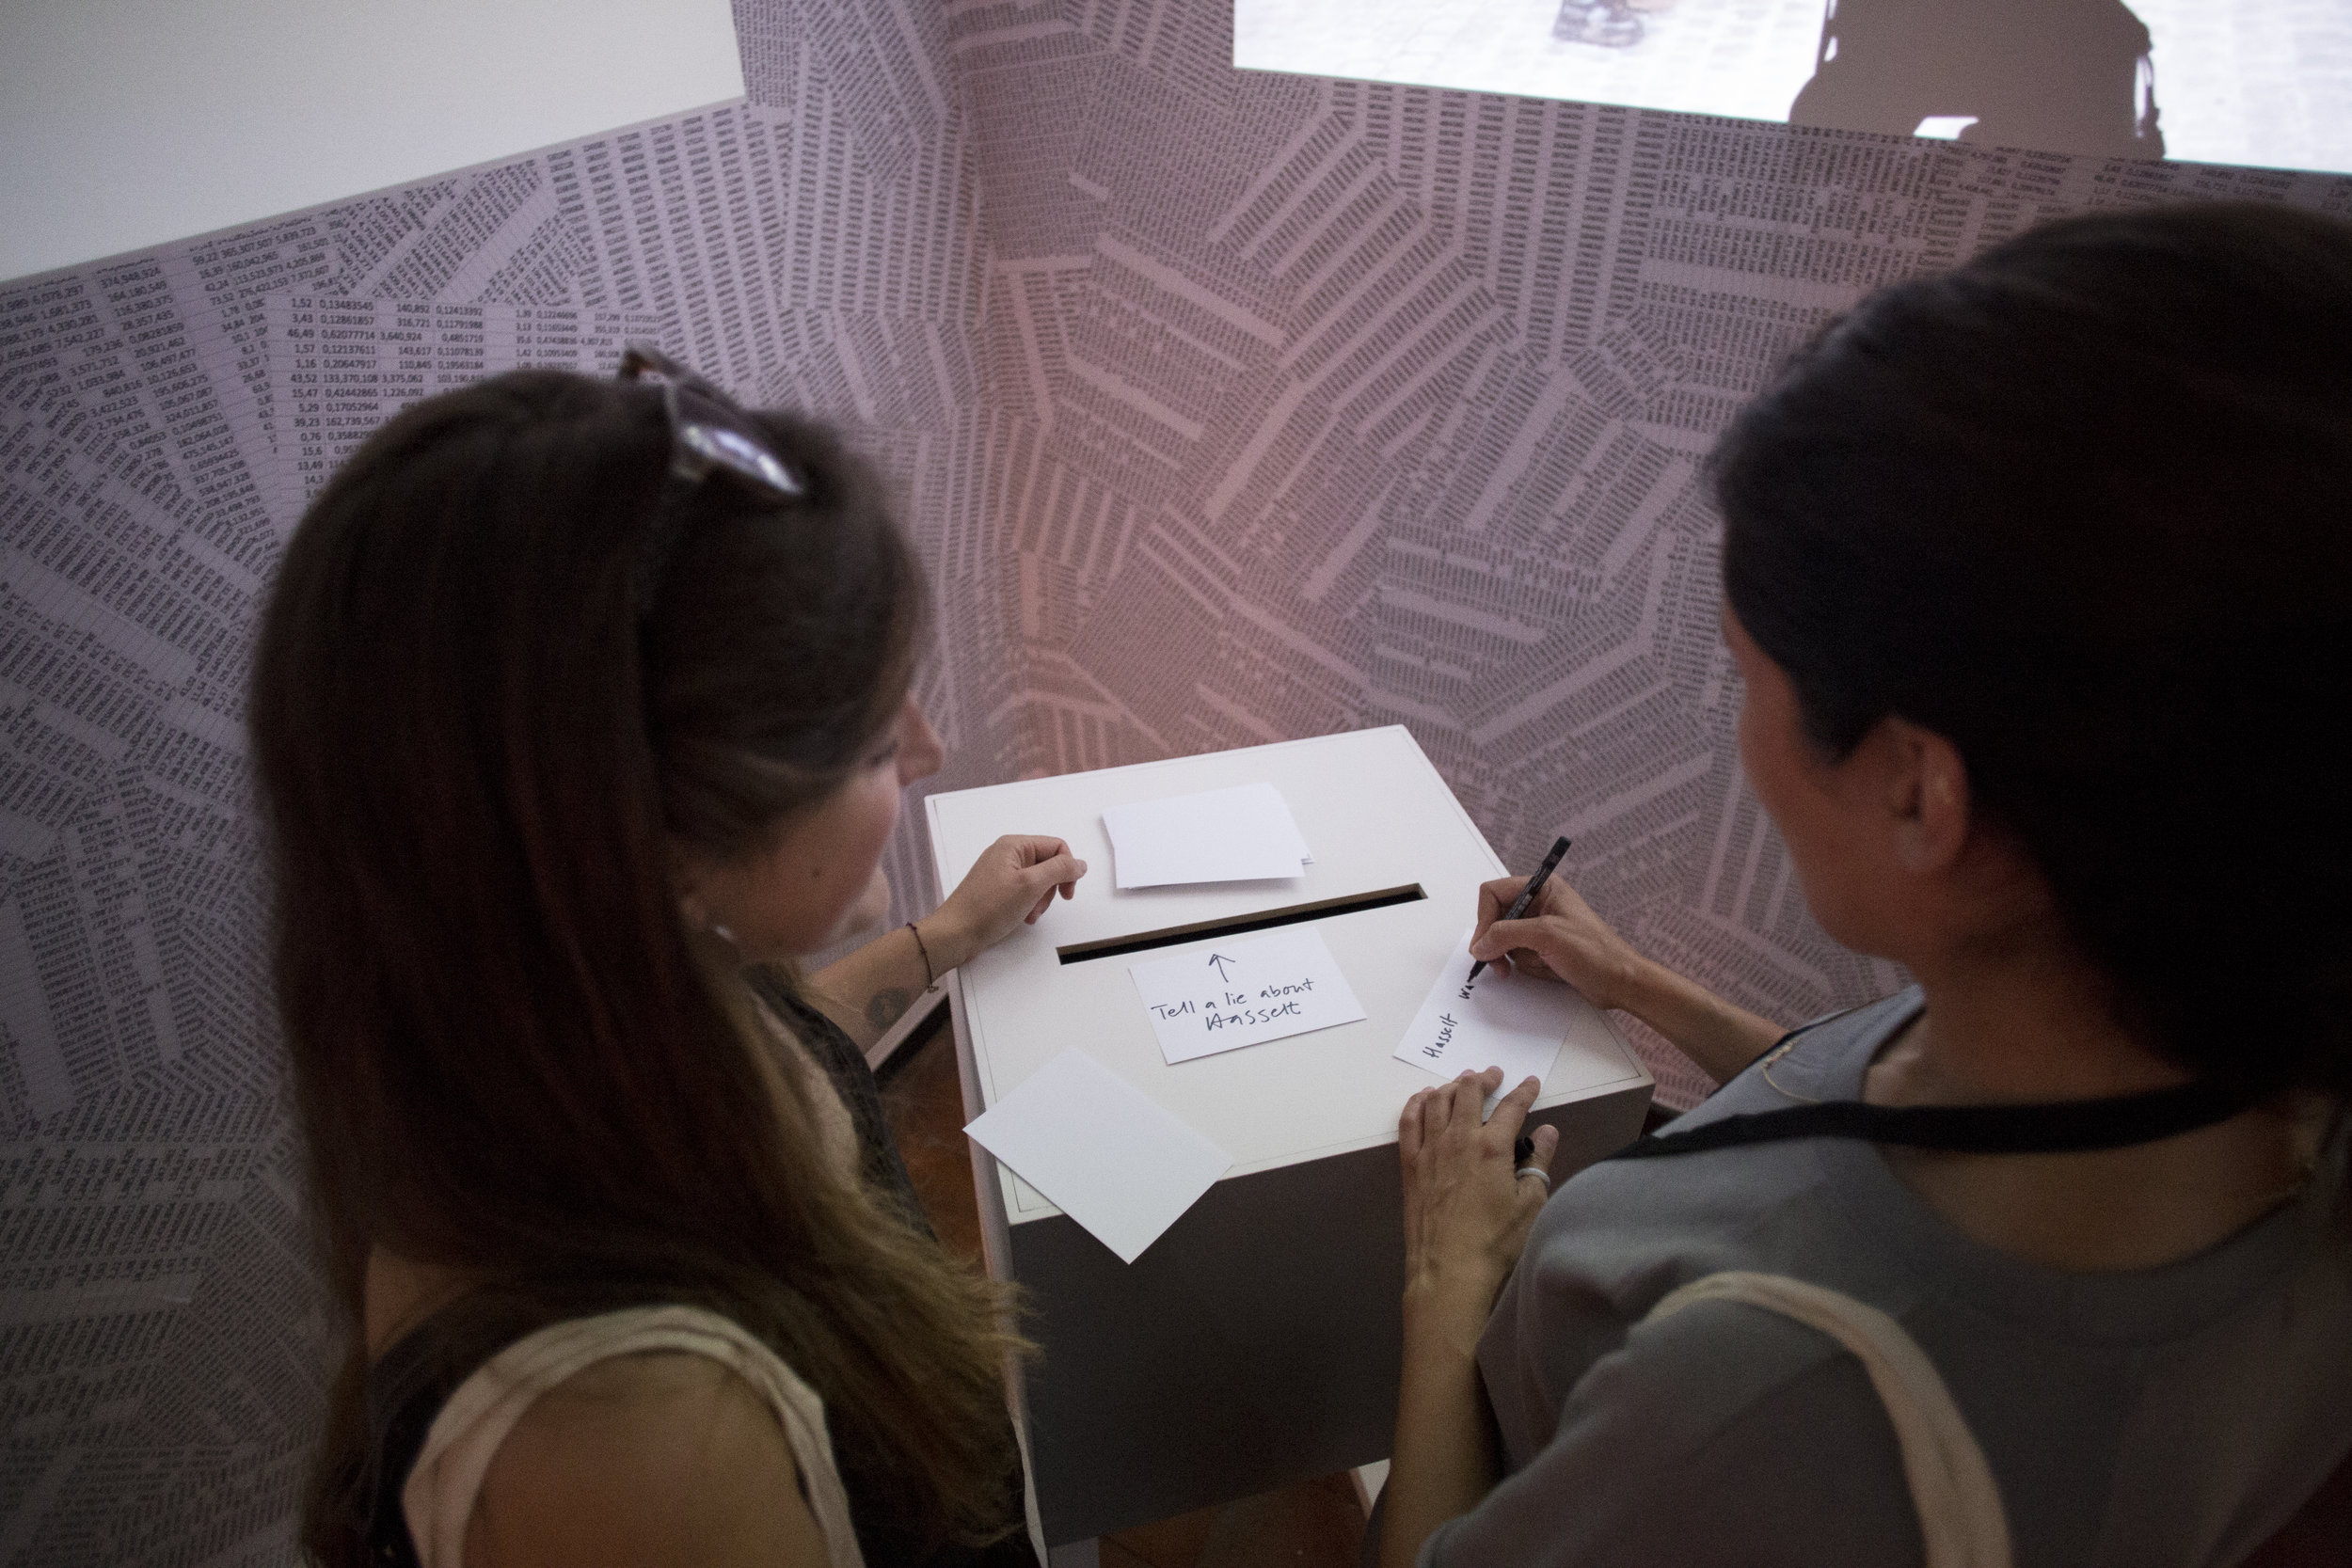 Documentation from the opening night of Politics of Design: Act 1. Visitors submitting more lies in the ballot box.